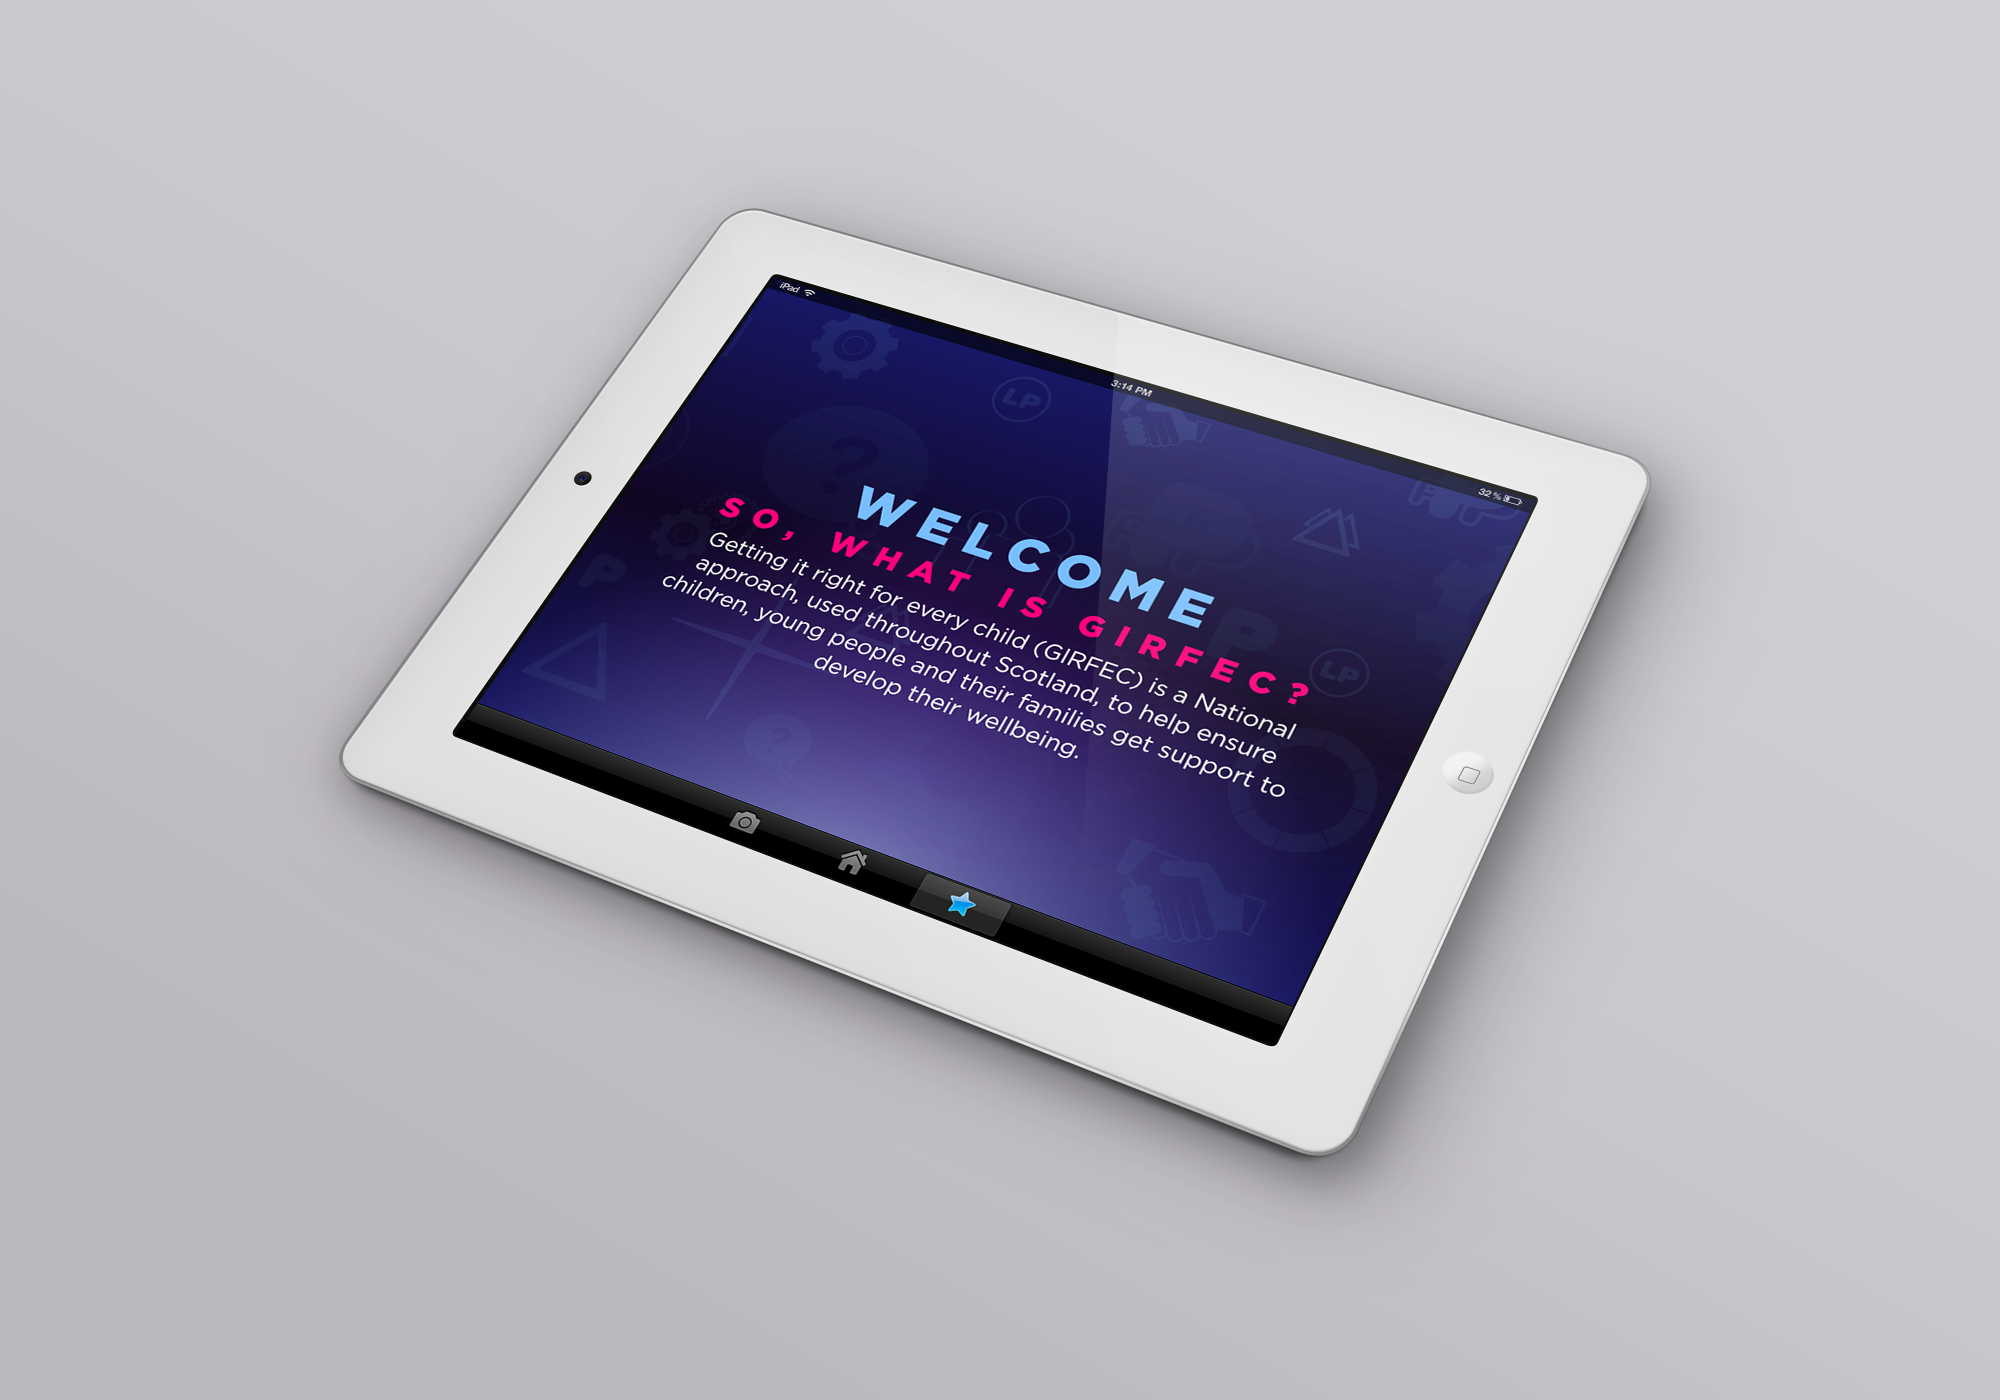 ipad2-white-perspective-view-landscape-mockup